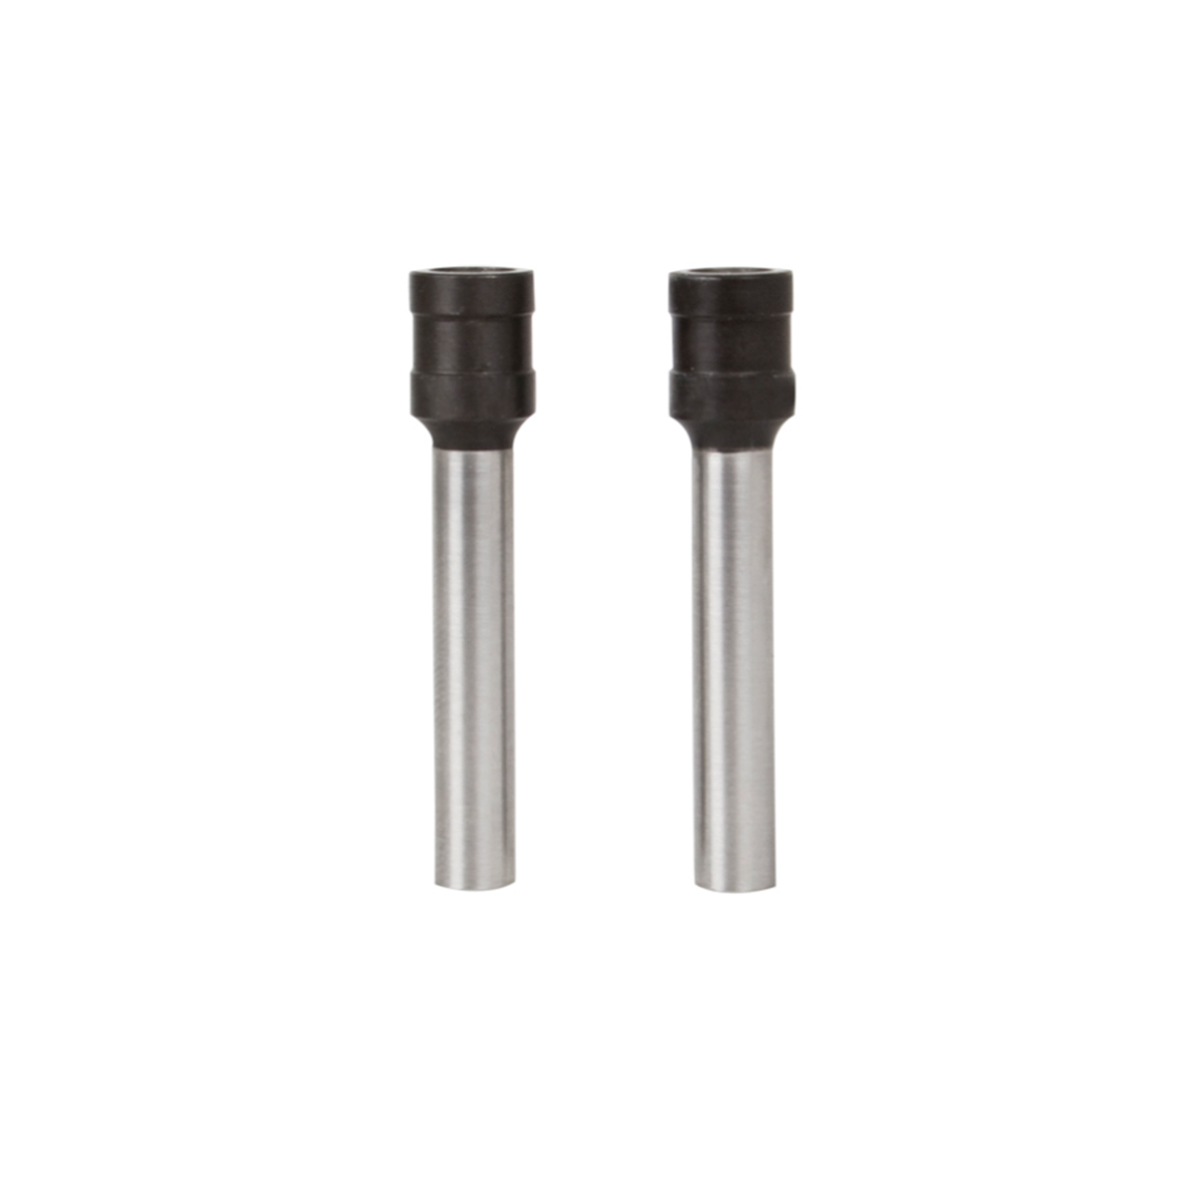 Rexel 2101098 HD2300 Replacement Punch Pins